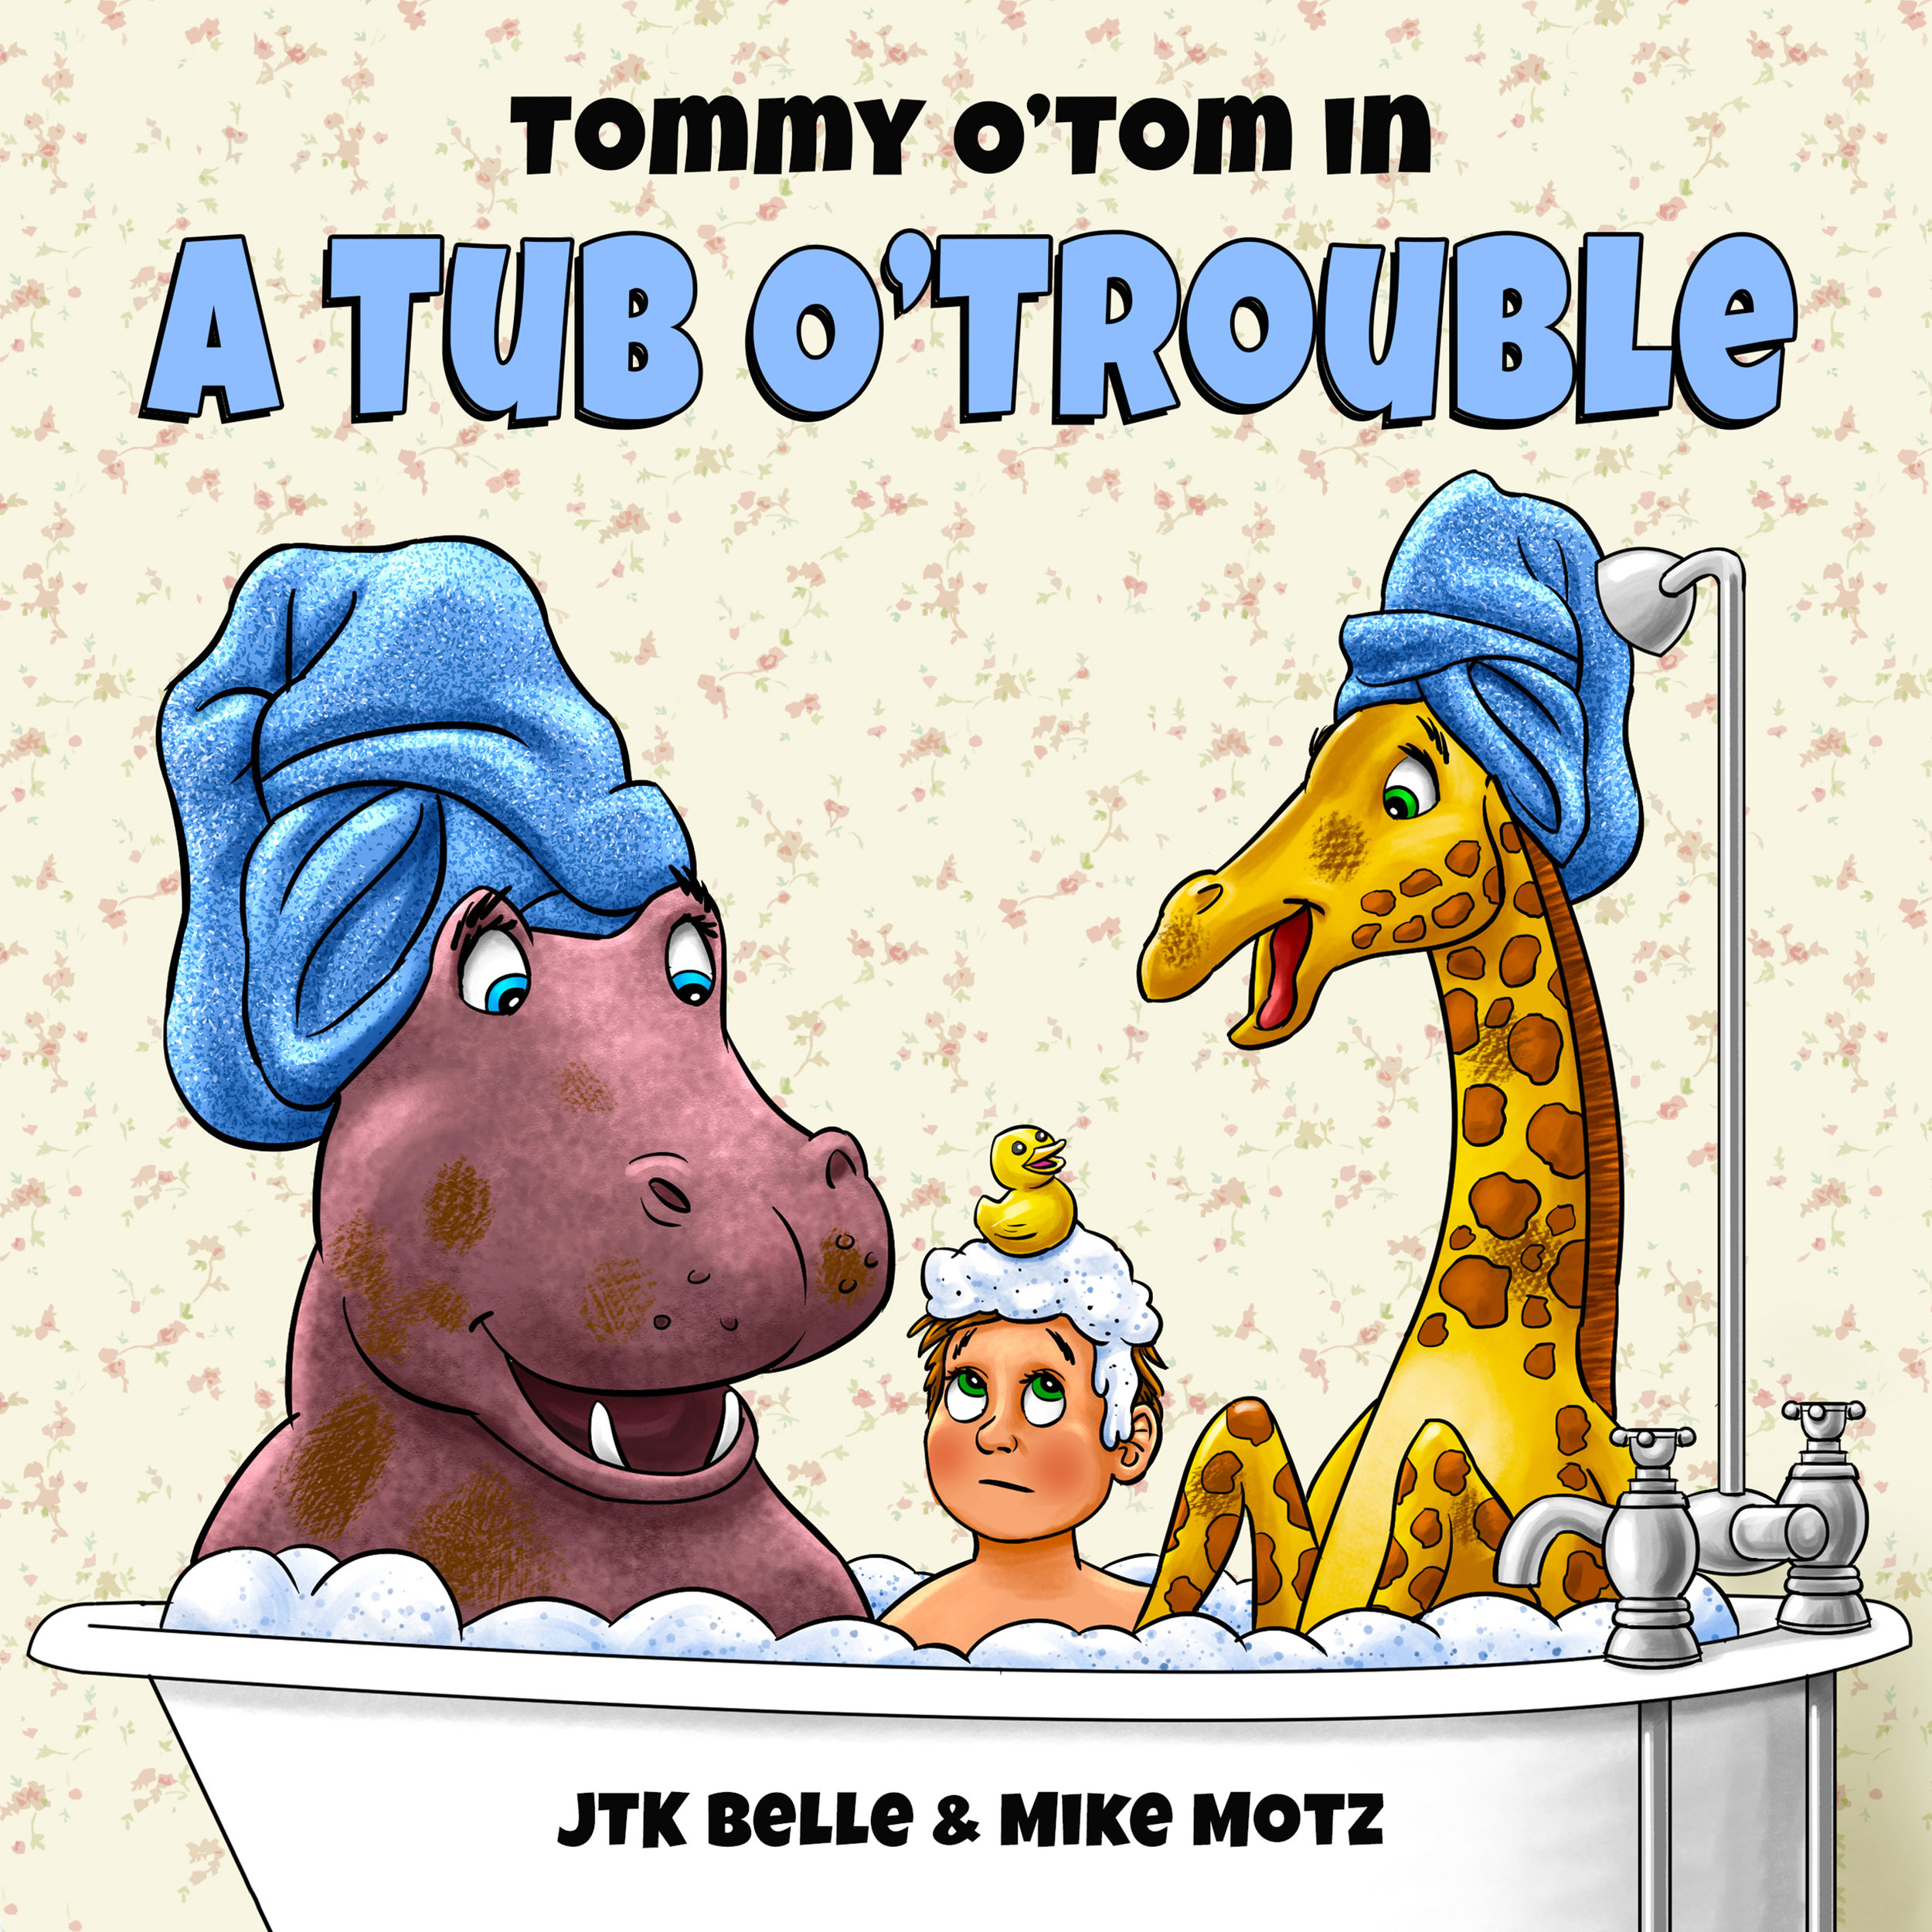 Belle_TommyO'TomInATubO'Trouble_Ebook cover.jpg